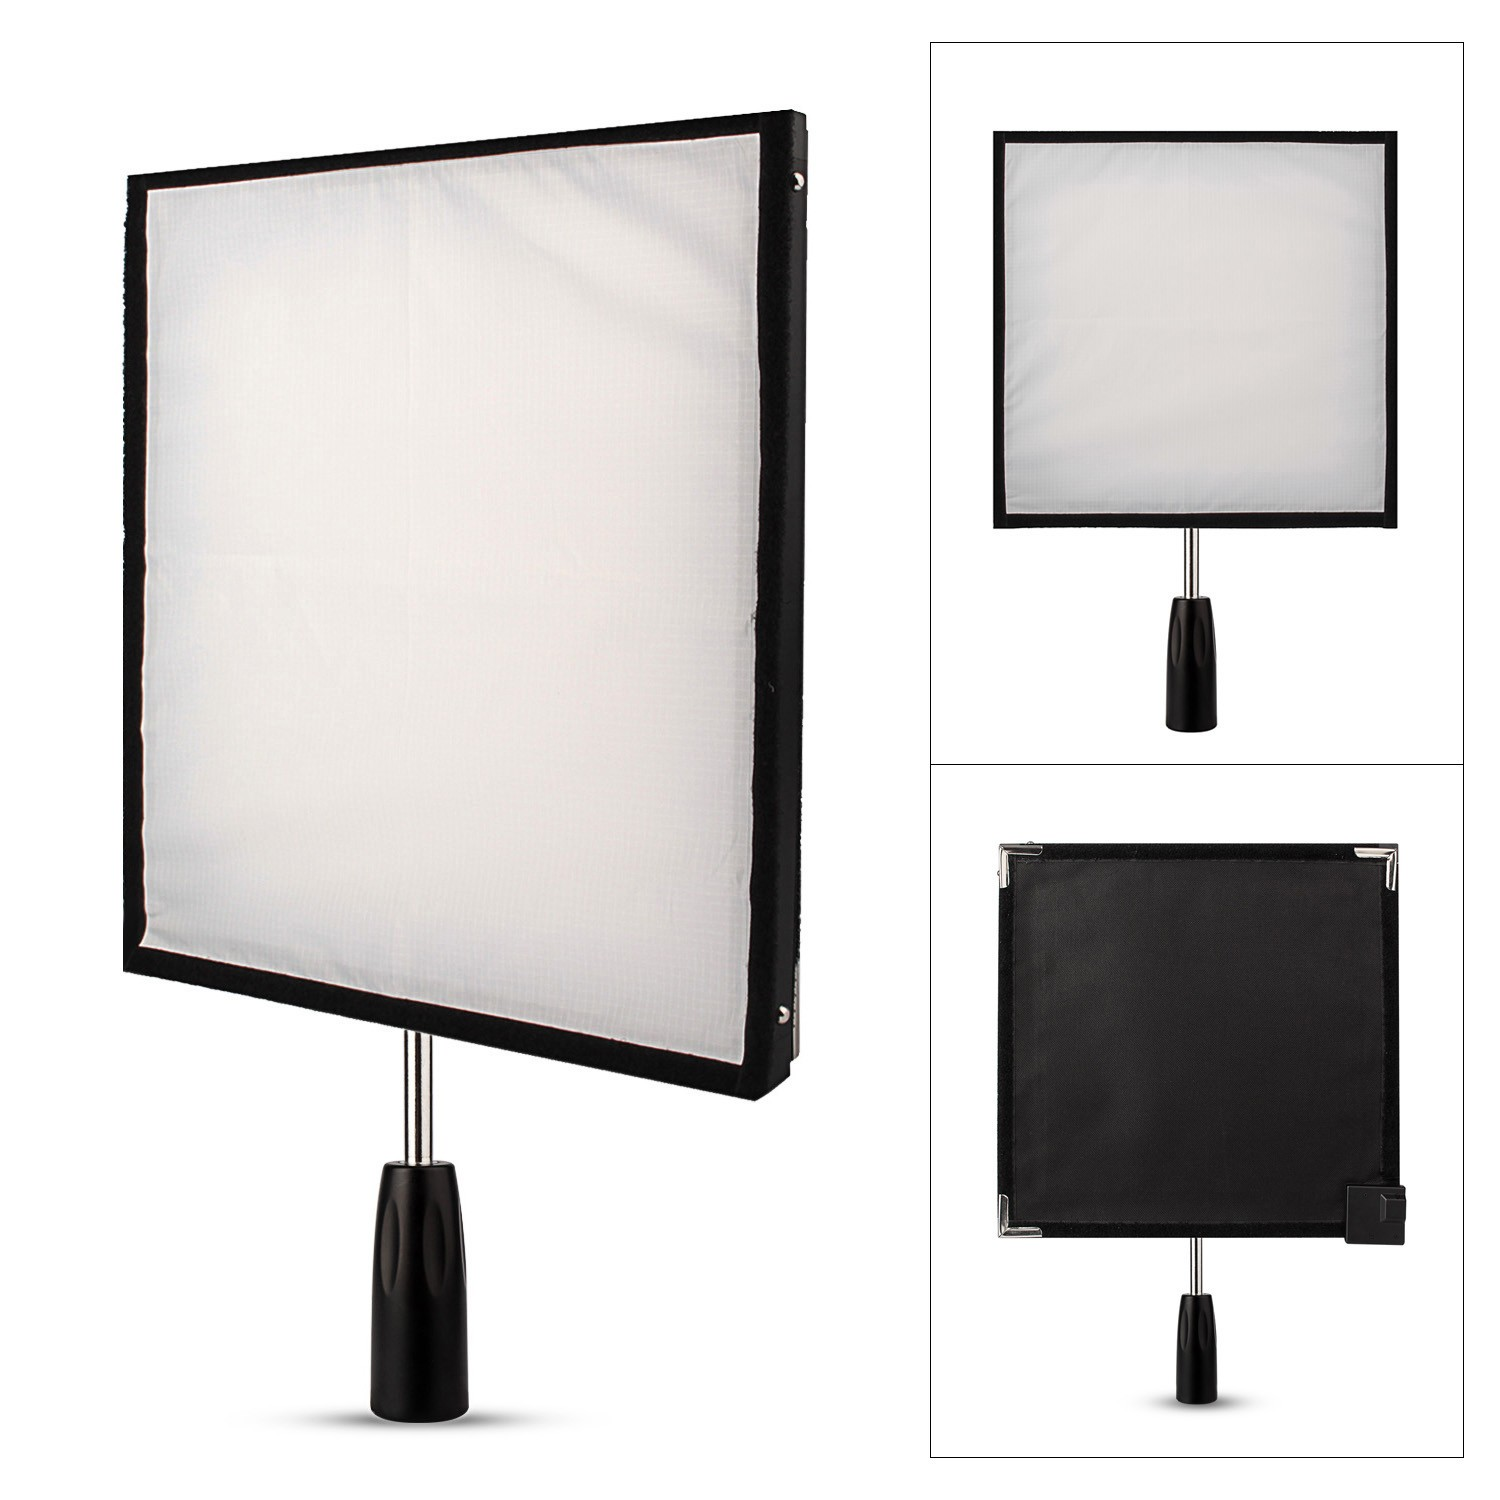 Travor FL-3030 2.4G Remote Flexible Moldable LED Video Fabric LightFlex Mat CRI90 5500K 256 Daylight LED Lumens Max 4500LM travor flexible led video light fl 3060 size 30 60cm cri95 5500k with 2 4g remote control for video shooting